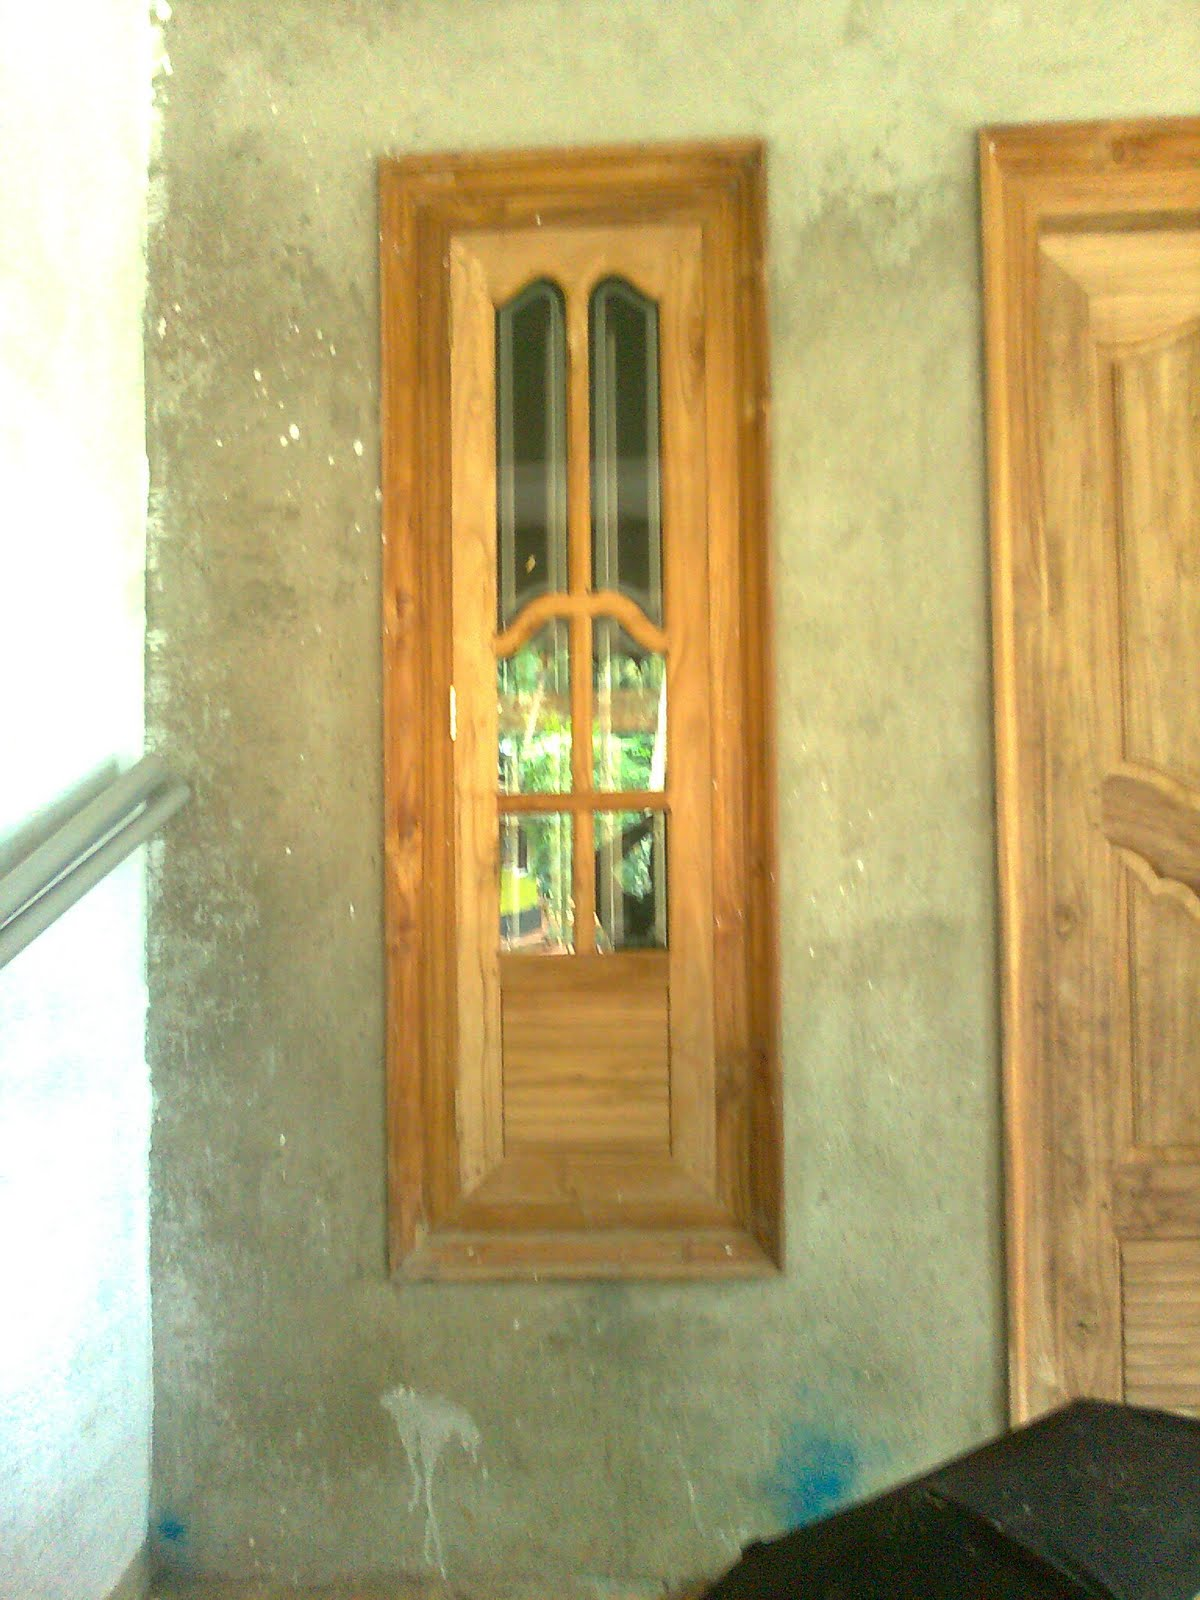 Bavas wood works wooden window doors simple designs for Simple wooden front door designs